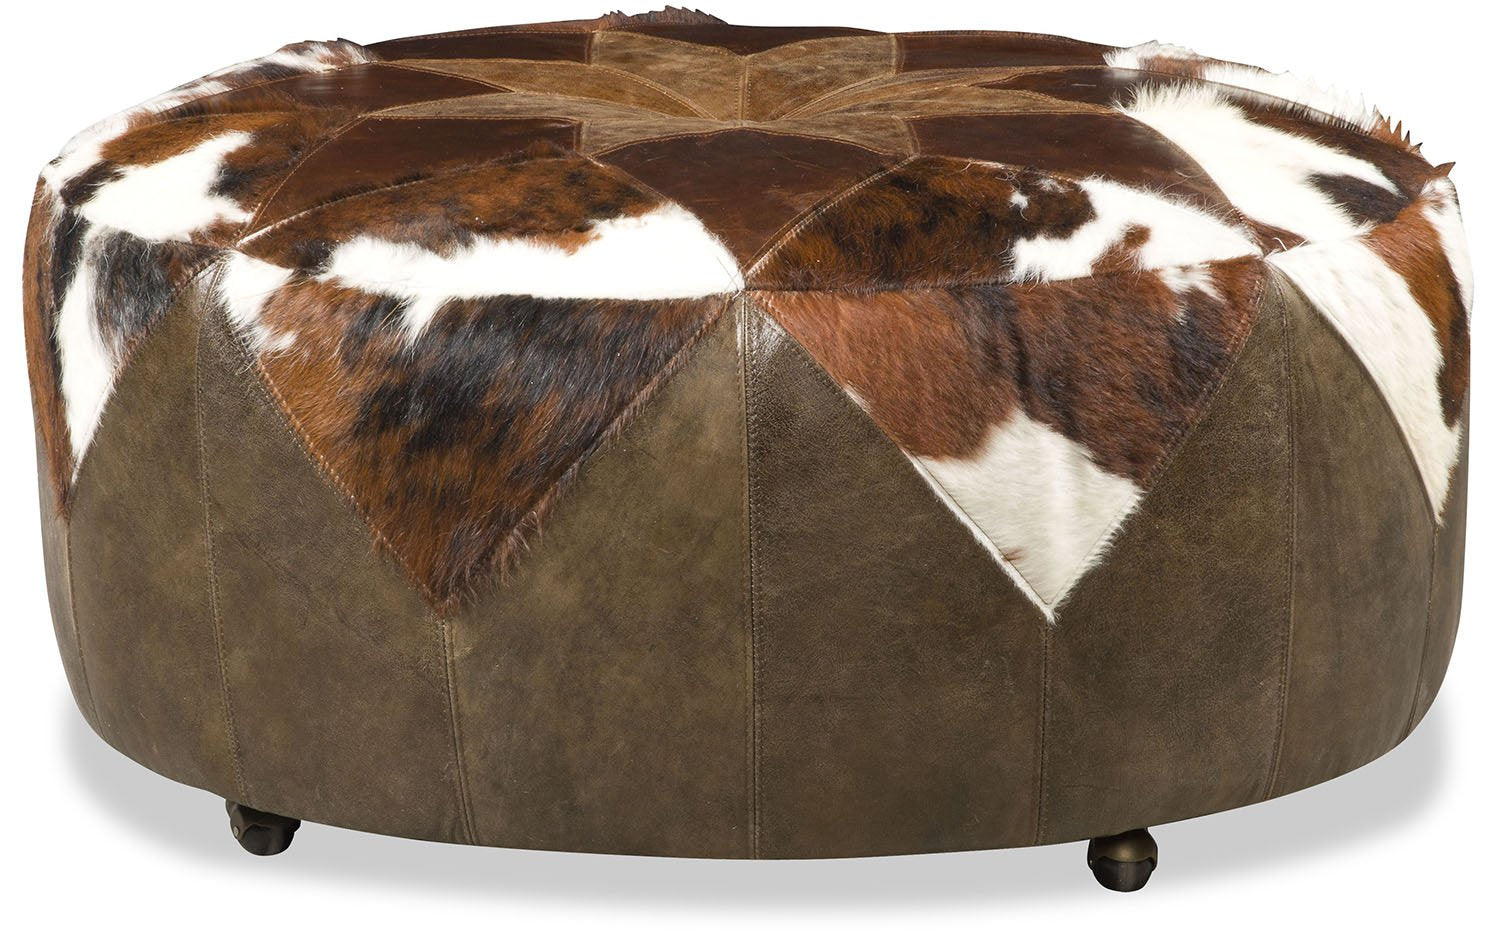 Tristin Patches Leather and Cowhide Ottoman - Tricolor